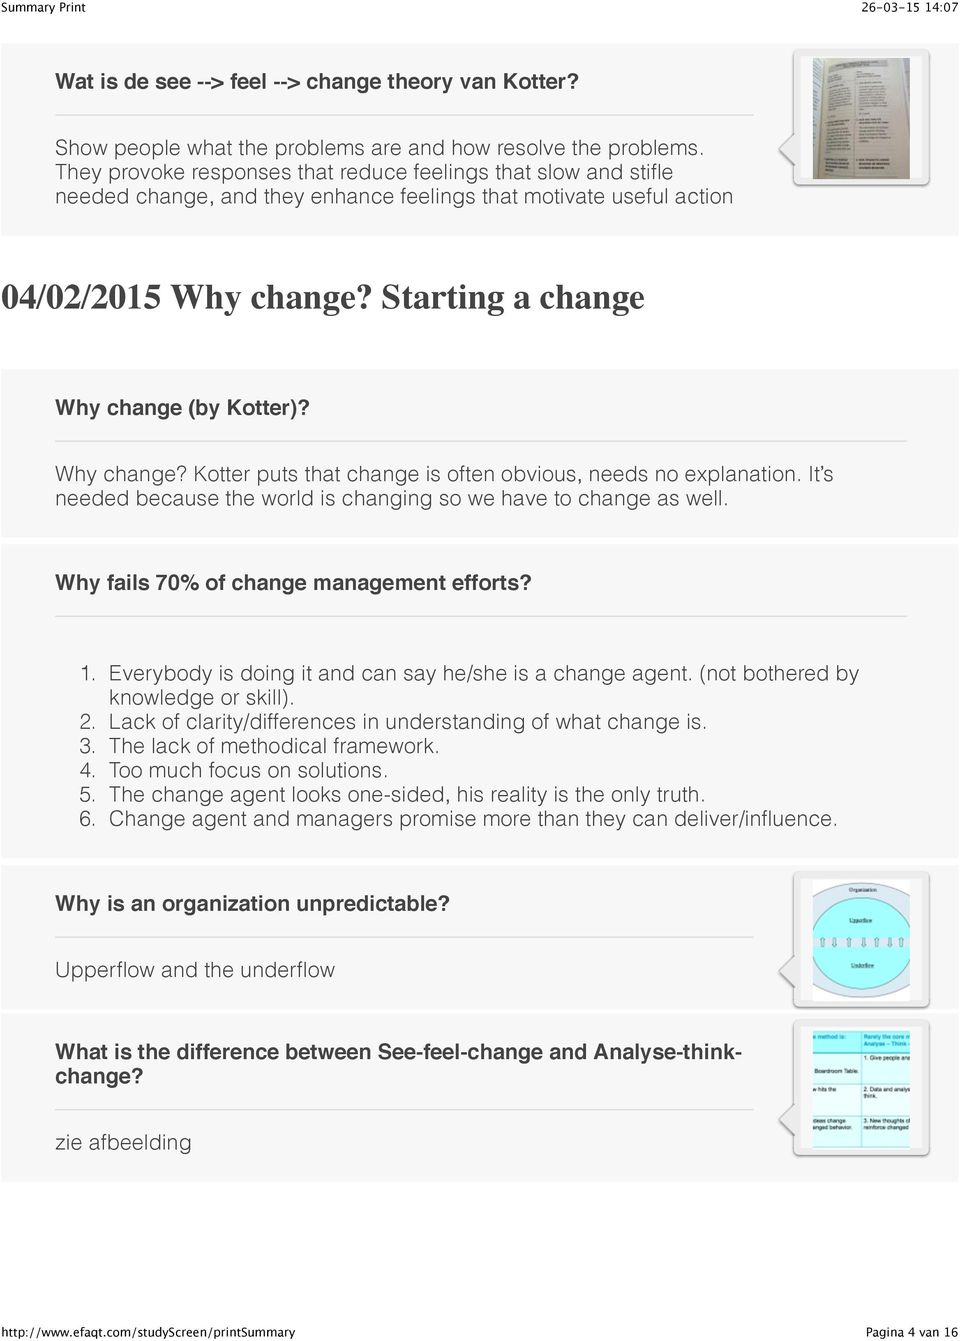 Why change? Kotter puts that change is often obvious, needs no explanation. It s needed because the world is changing so we have to change as well. Why fails 70% of change management efforts? 1.